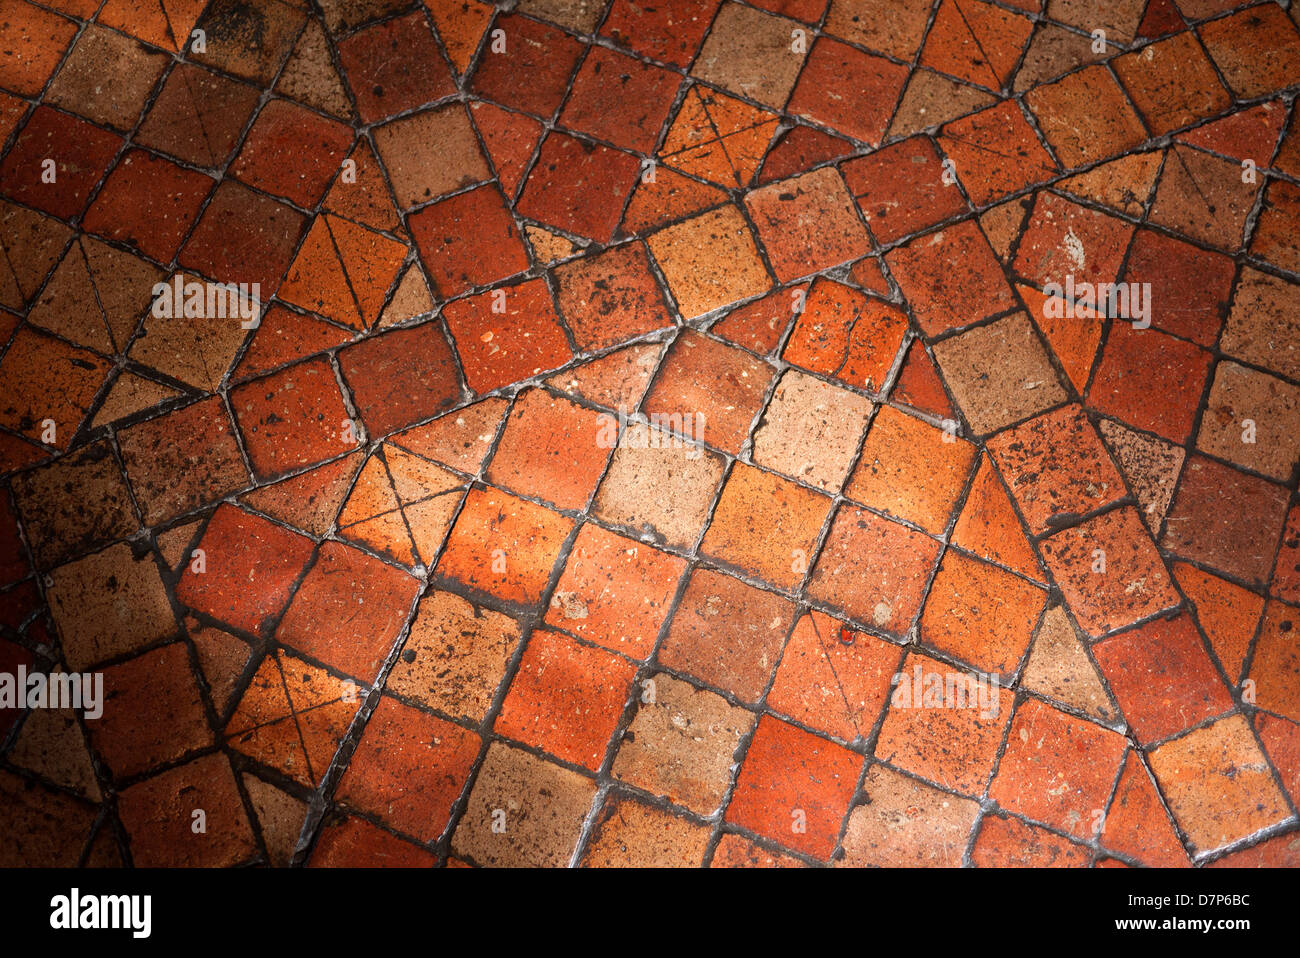 Antique terracotta floor tiles. - Stock Image